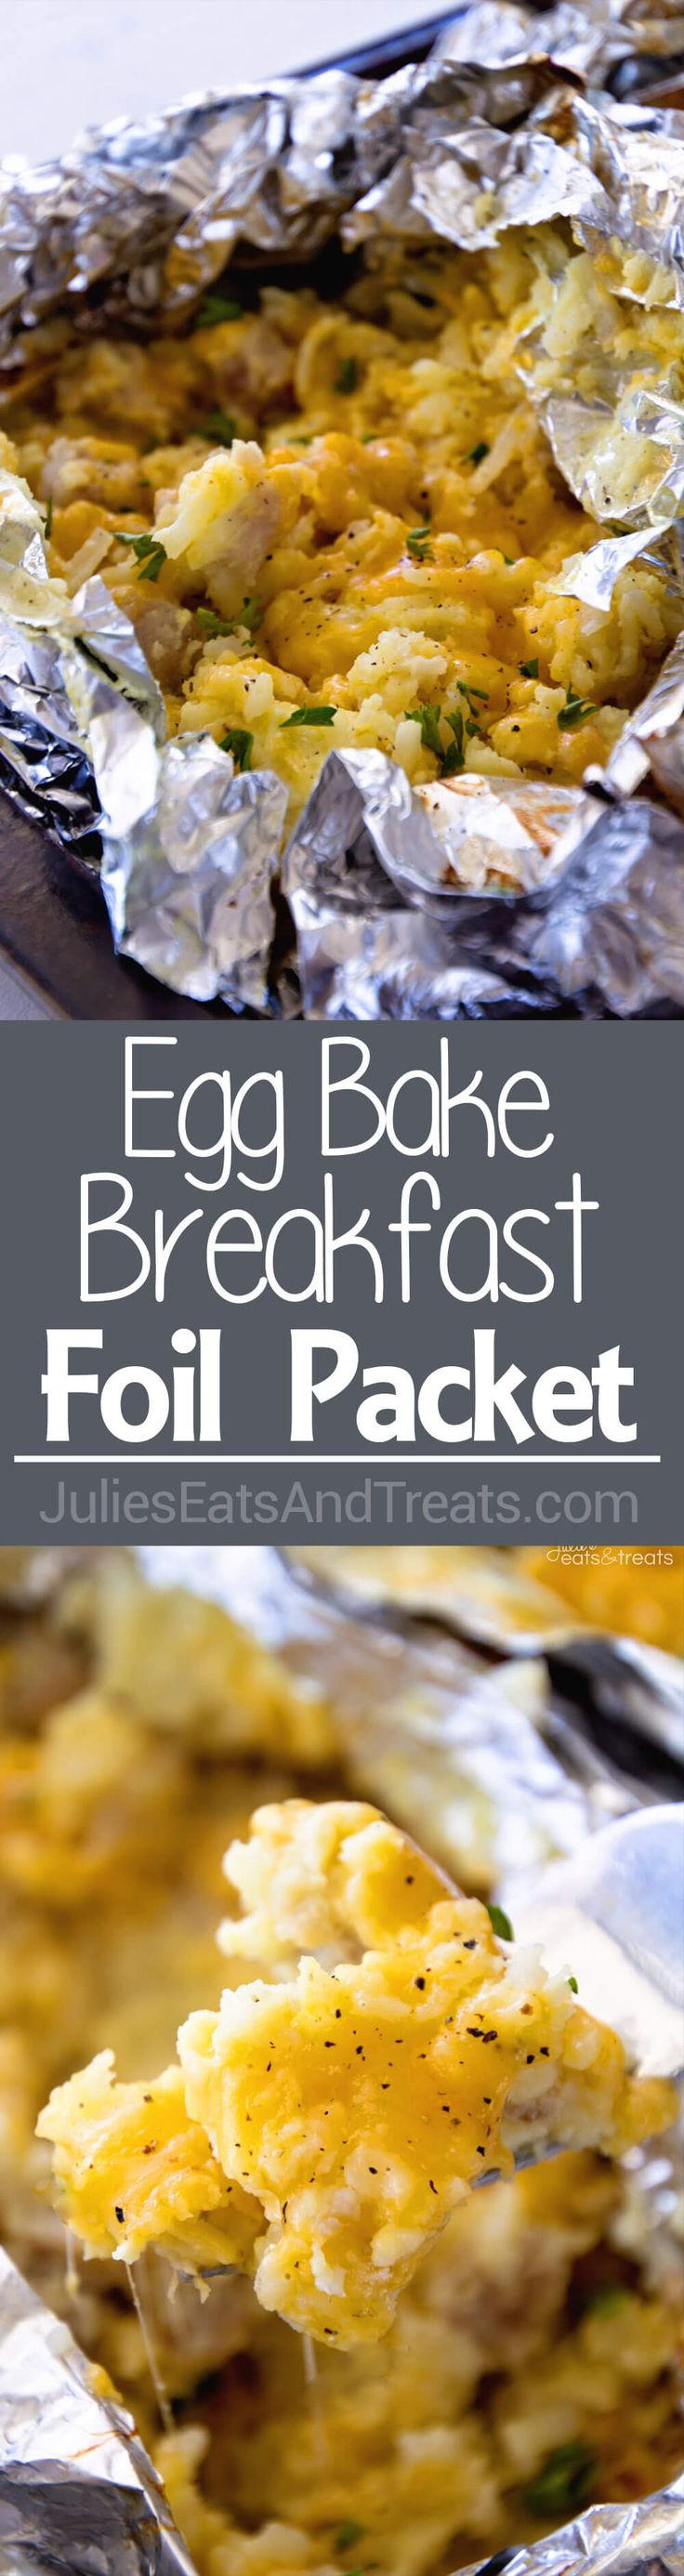 Egg Bake Breakfast Foil Packet ~ Love Breakfast Casseroles As Much As I Do? Now You Can Make Them Over The Campfire or on the Grill! Enjoy Your Favorite Breakfast on the Grill or Campfire! ~ http://www.julieseatsandtreats.com